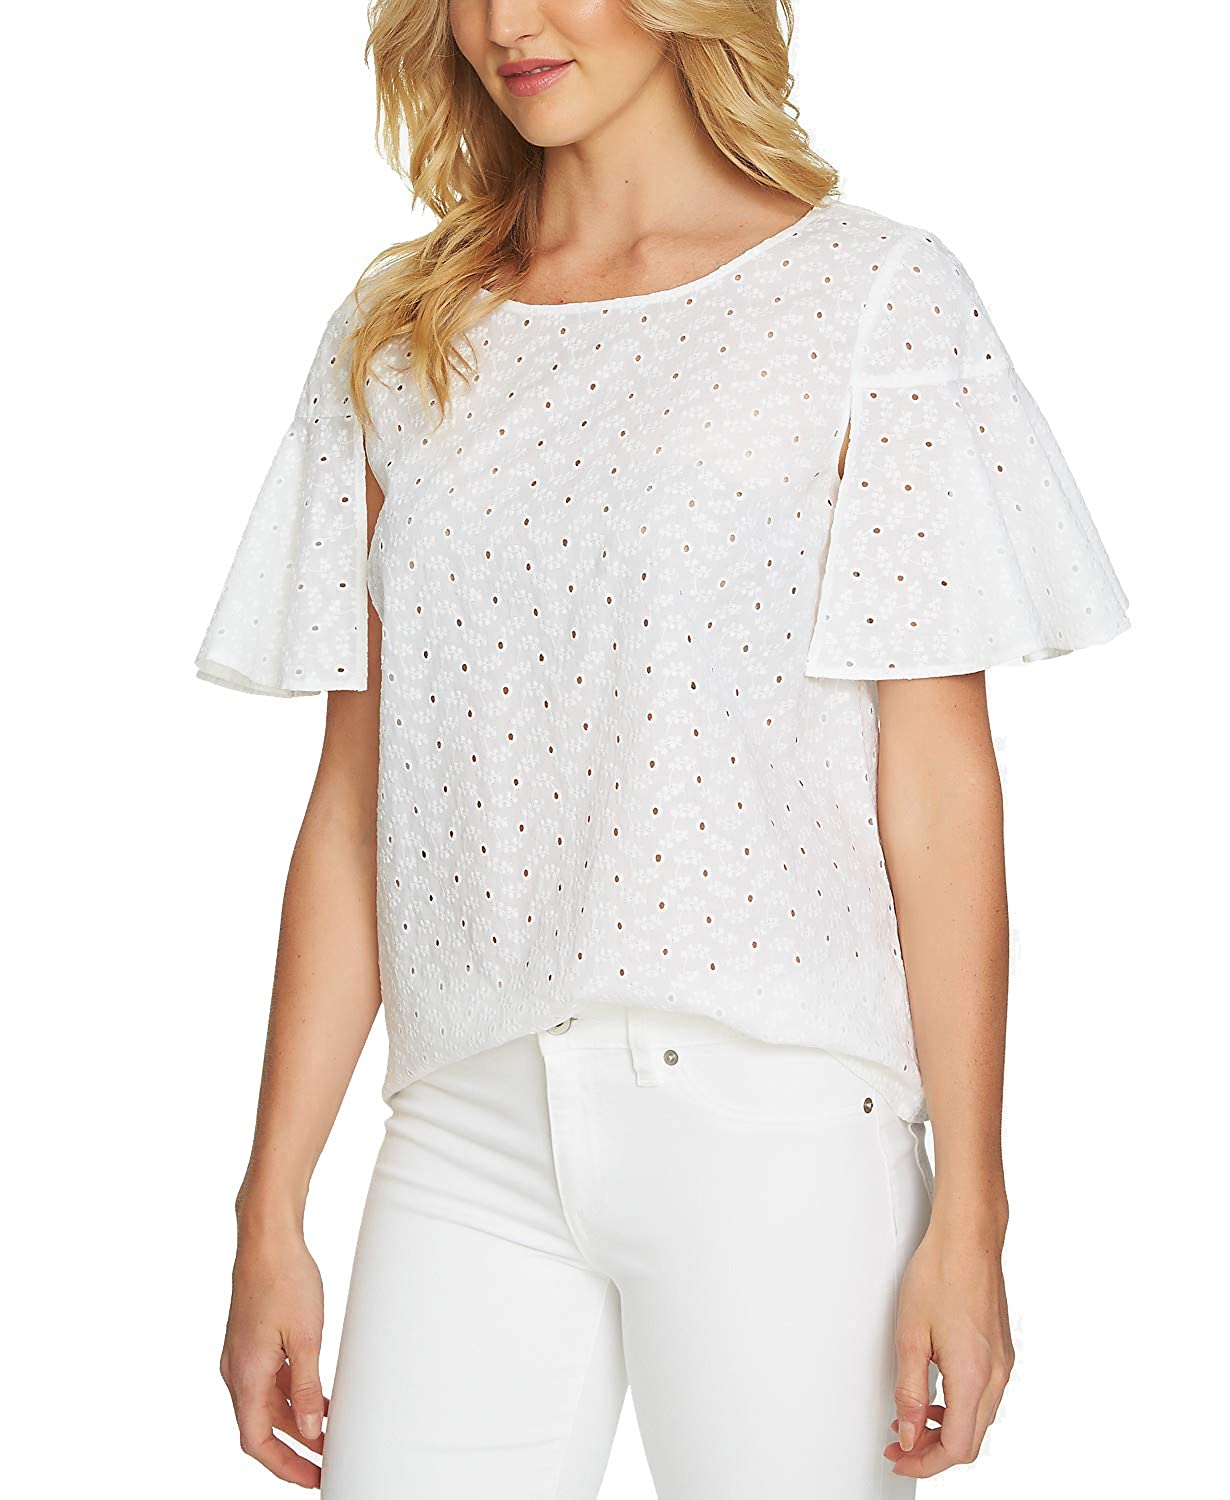 b9d62d4a1a9 CeCe Cotton Eyelet Flutter-Sleeve Top (Ultra White, S) at Amazon Women's  Clothing store: